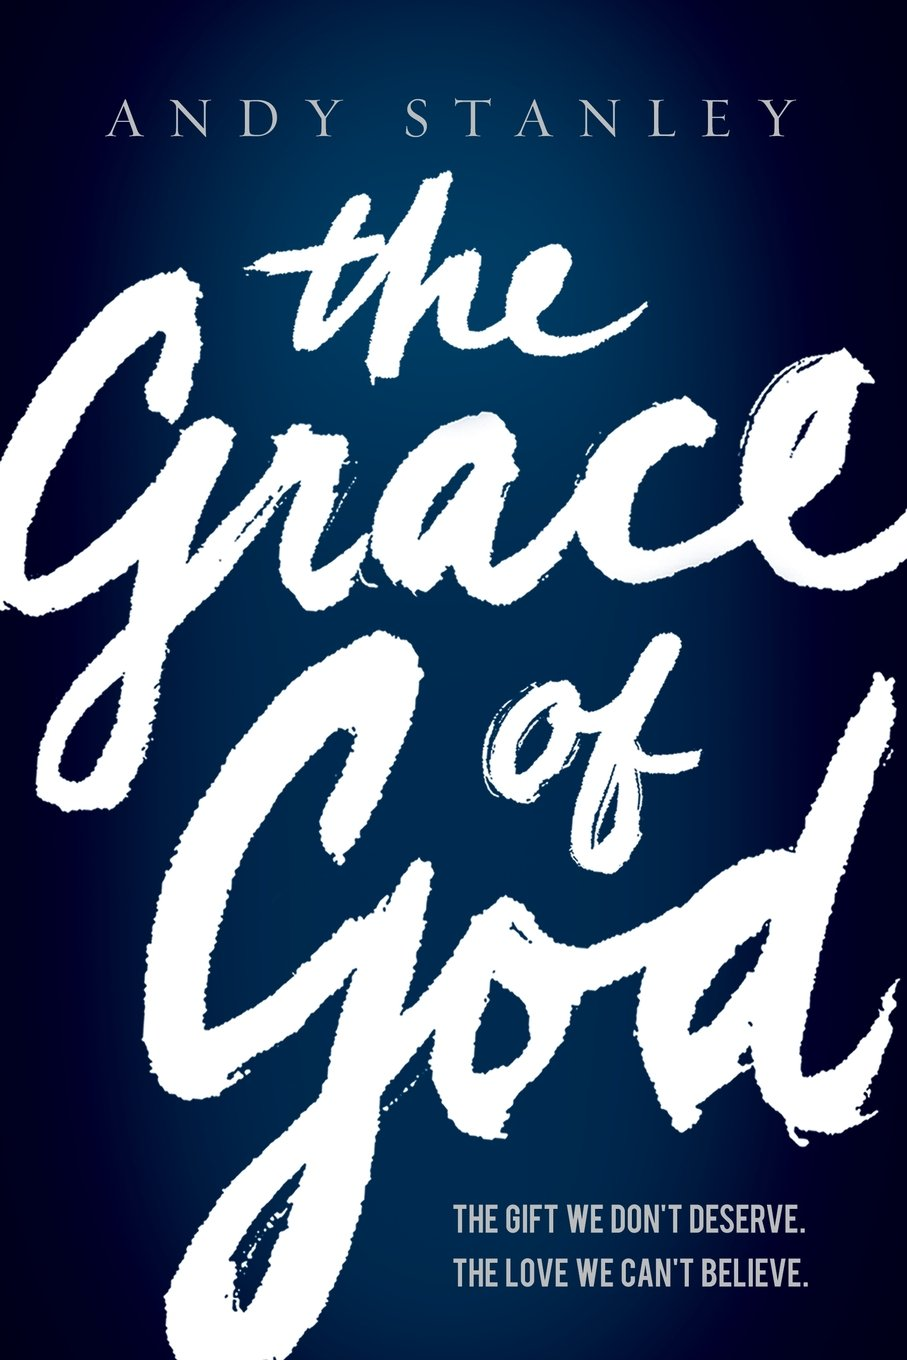 The Grace of God: Andy Stanley: 9780849947162: Amazon.com: Books